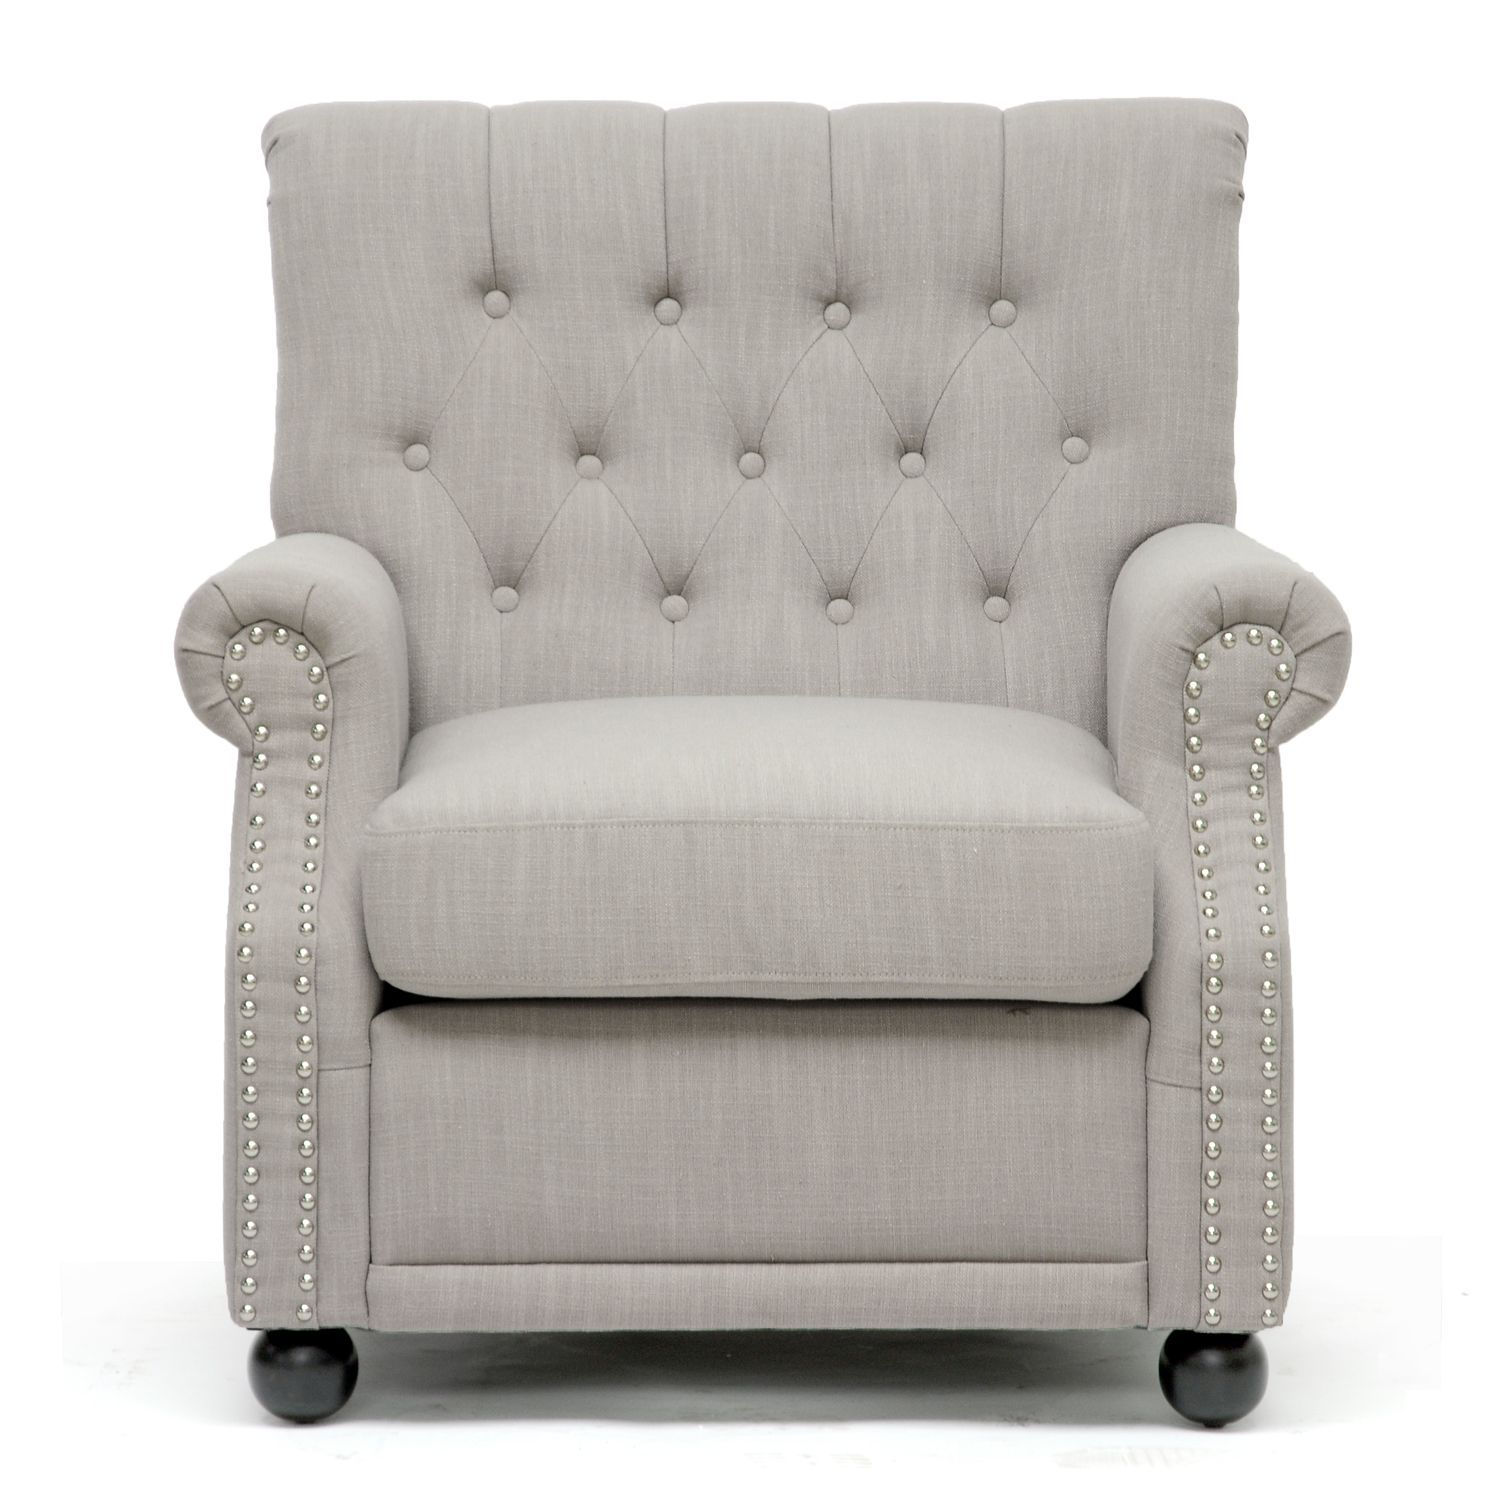 Add a modern twist to your home decor with this linen club chair